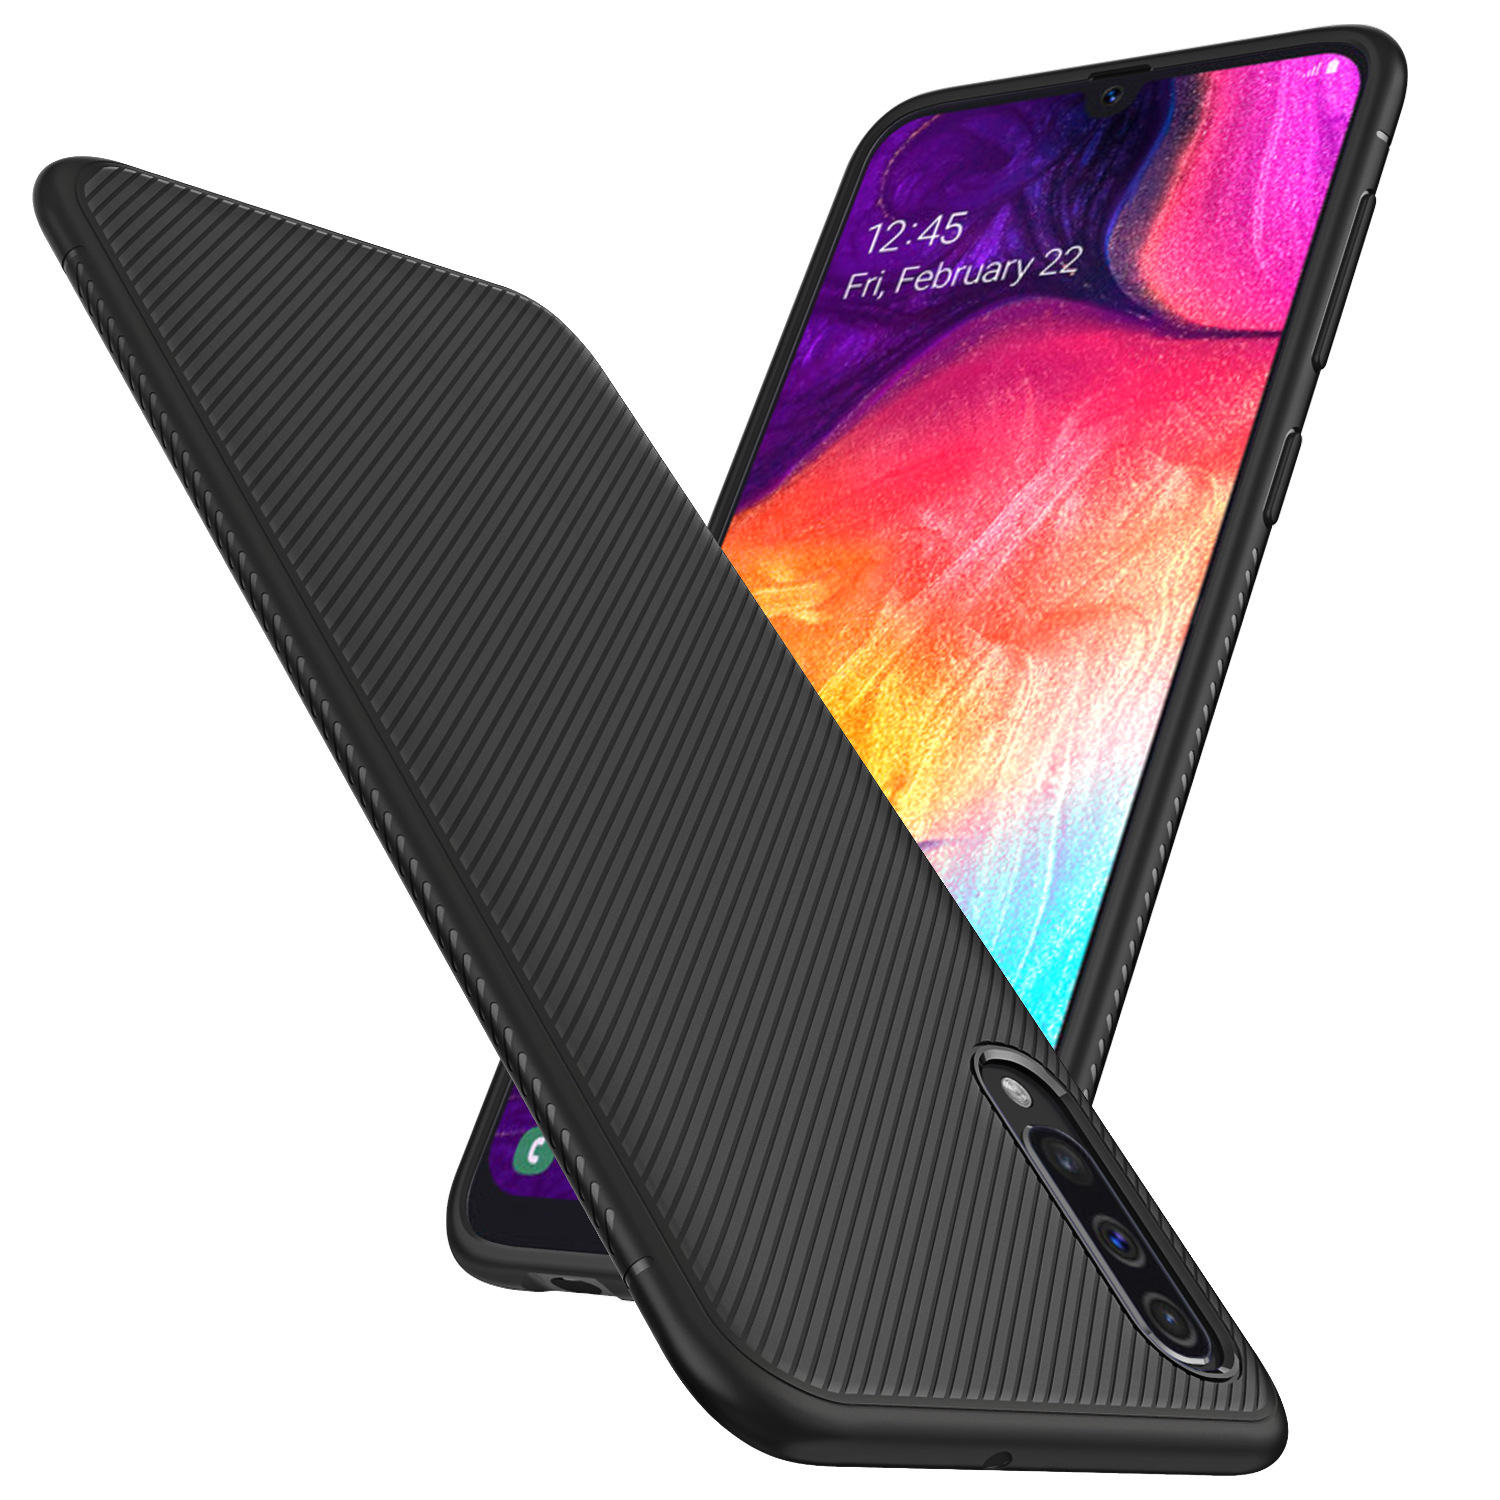 Bakeey Carbon Fiber Protective Case For Samsung Galaxy A50 2019 Shockproof Soft TPU Back Cover